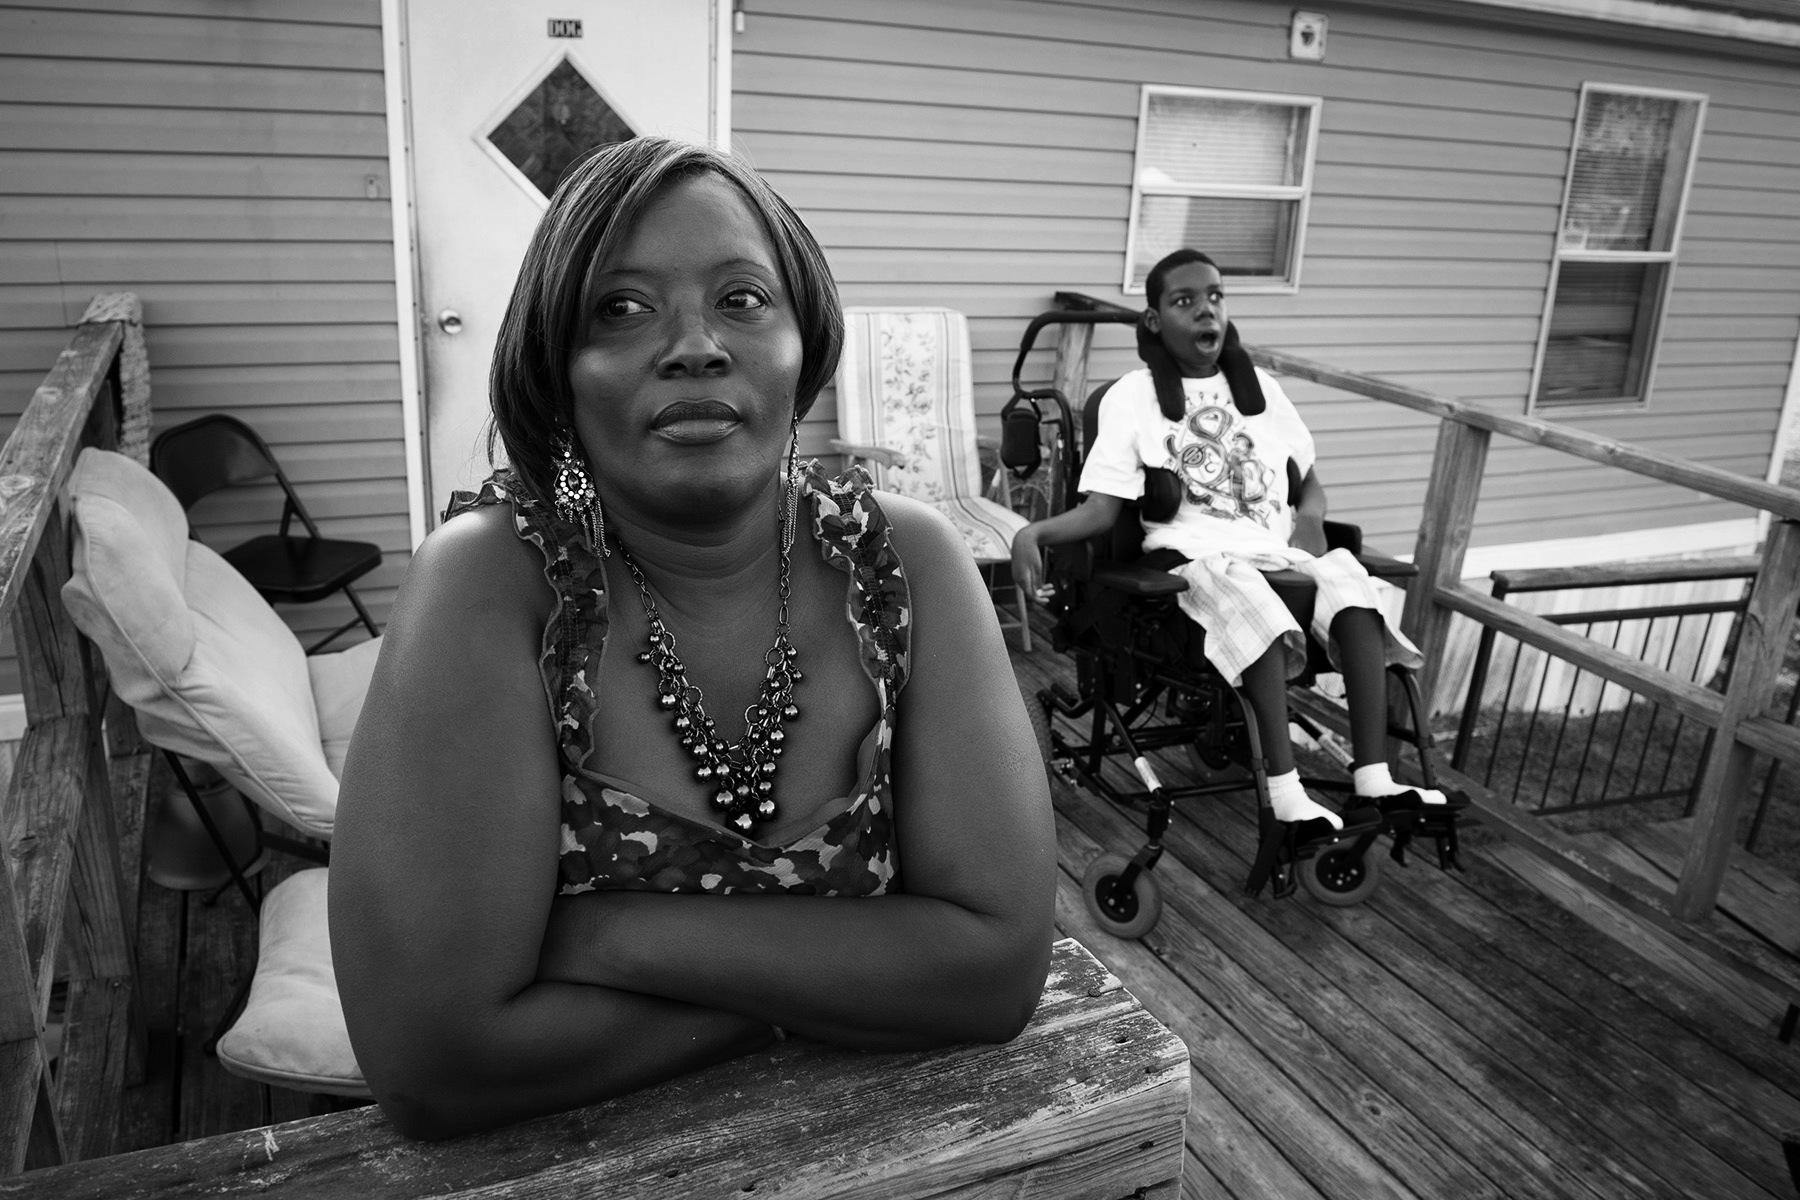 Essie Evans is a single mother in rural south Georgia with a profoundly disabled son Cornelius, now 16. Diagnosed with mitochondrial encephalomyopathy , he can't speak, walk, move or care for himself. She struggles to fore for him in her modest mobile home, yet steadfastly refuses to place him in a nursing home. {quote}He needs to be with  people who love him,{quote} he said.  {quote}He's in there, I know it,{quote} Essie says of her son.